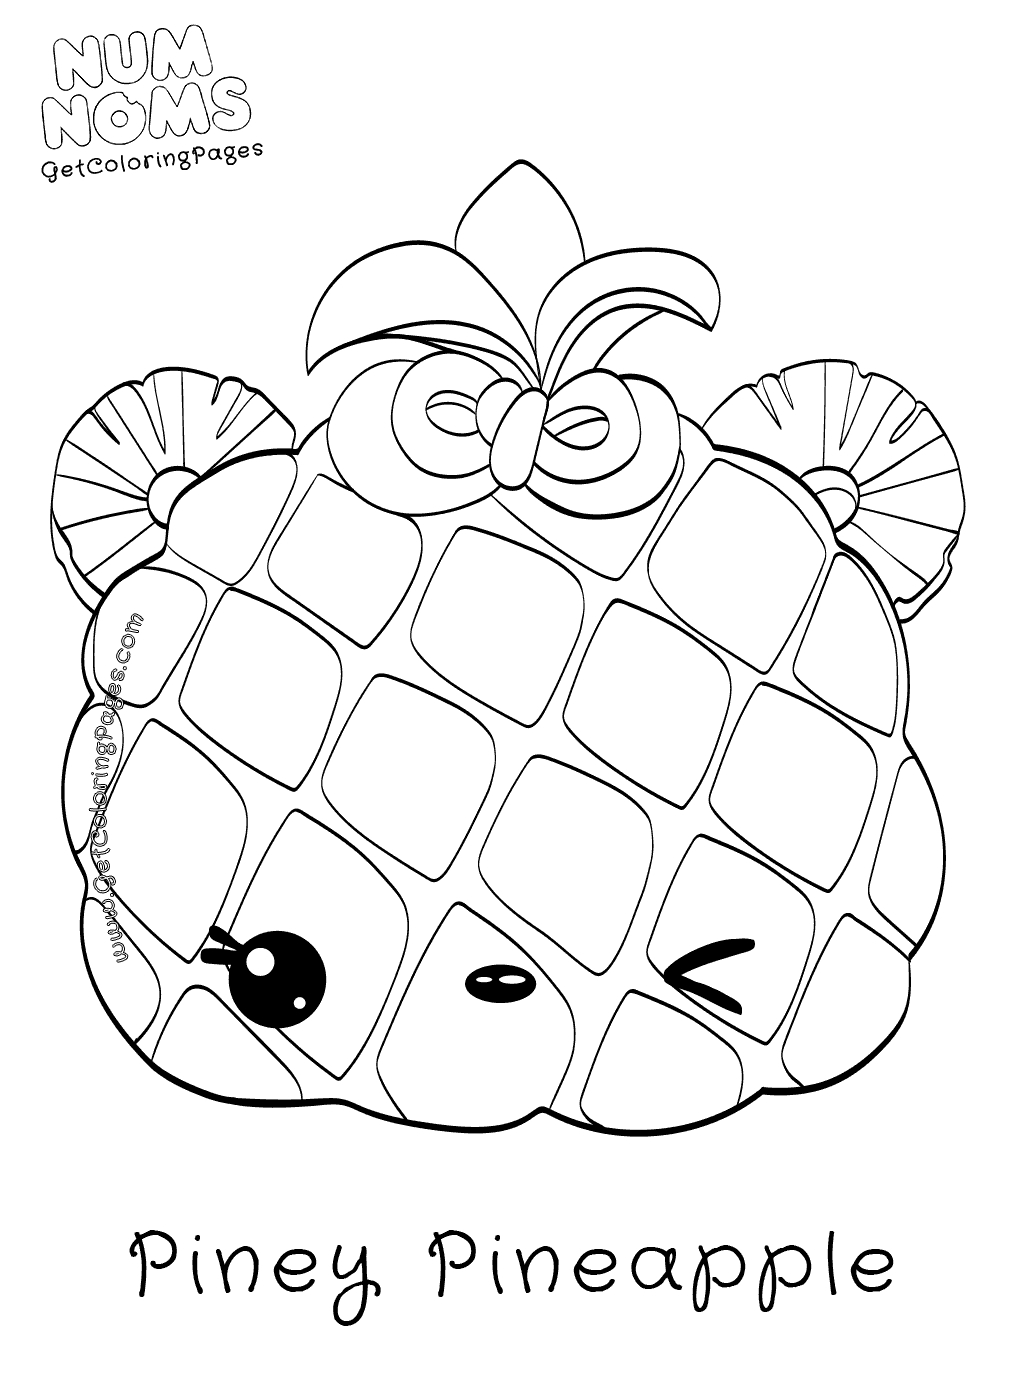 Corn Stalk Coloring Page At Getcolorings